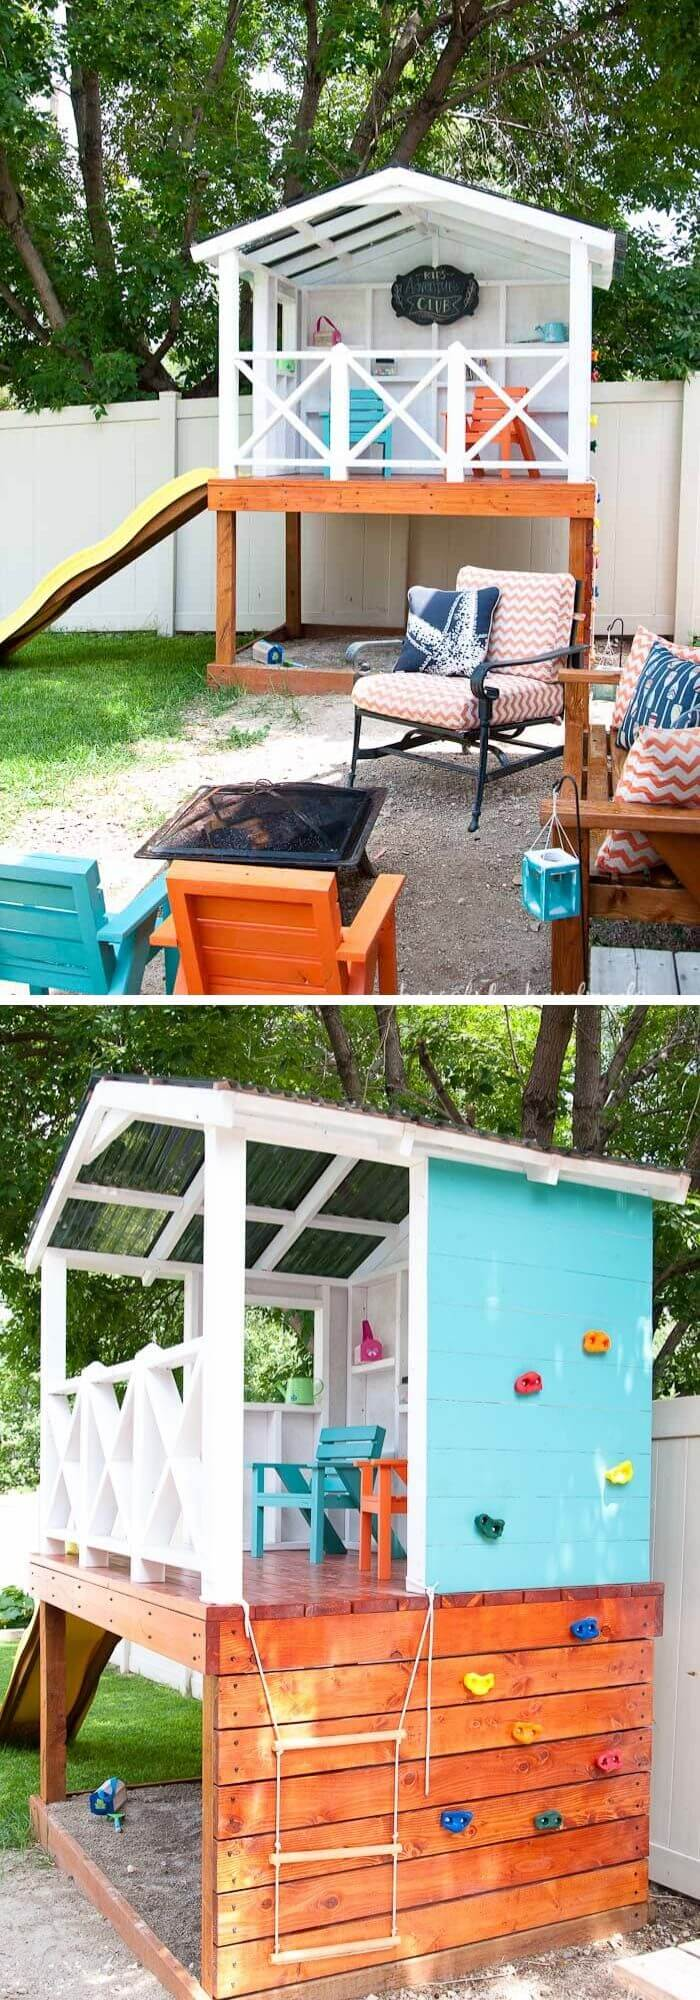 Backyard DIY Playhouse